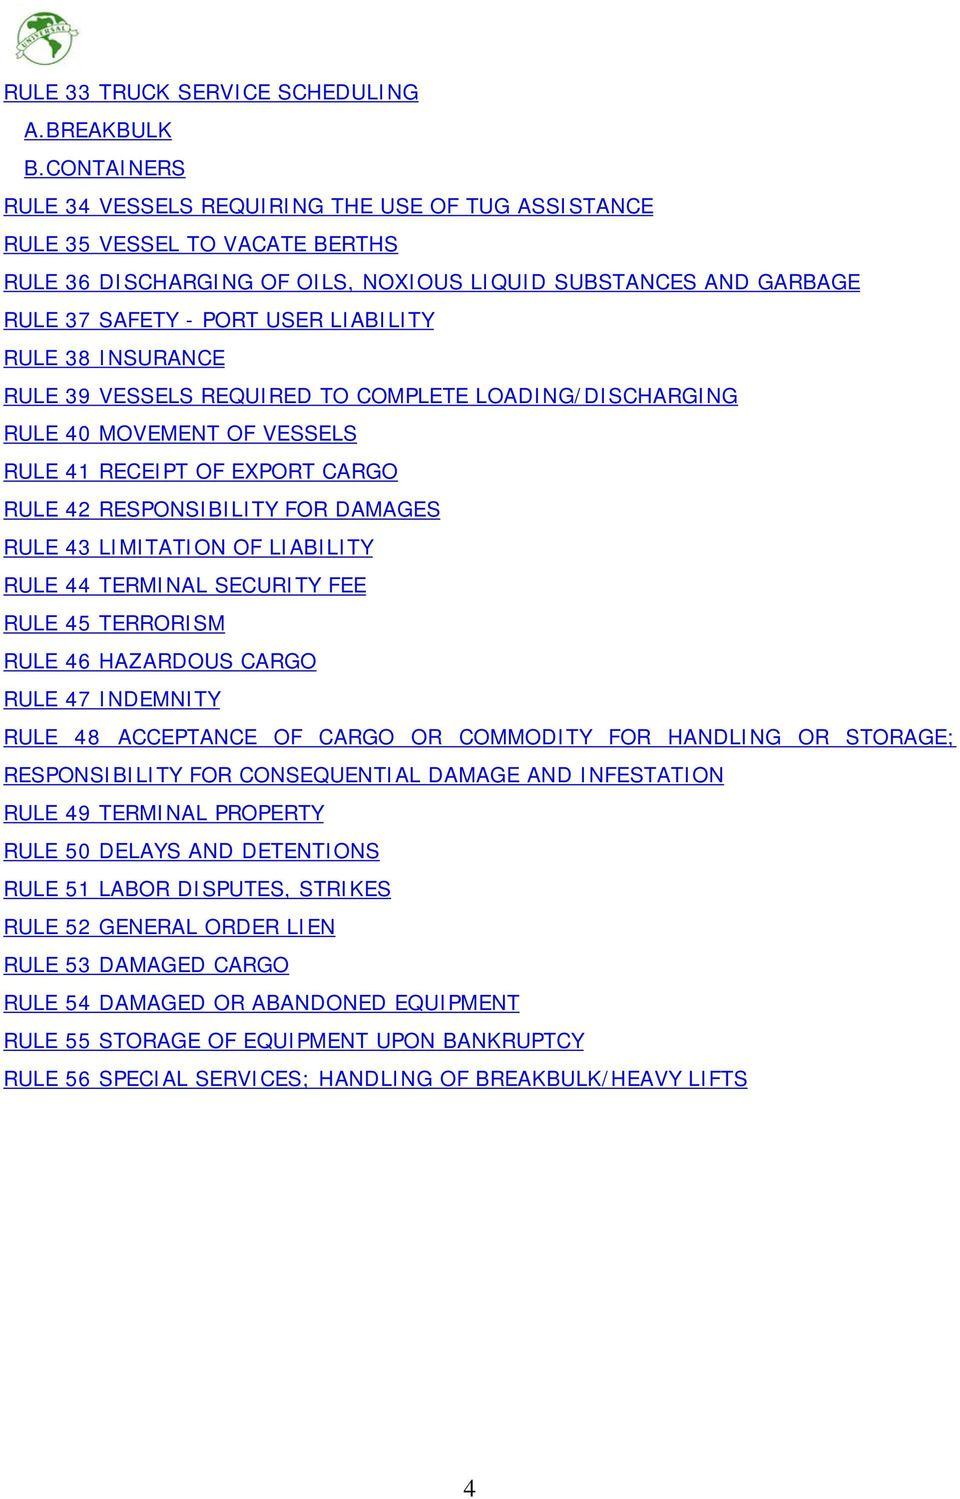 RULE 38 INSURANCE RULE 39 VESSELS REQUIRED TO COMPLETE LOADING/DISCHARGING RULE 40 MOVEMENT OF VESSELS RULE 41 RECEIPT OF EXPORT CARGO RULE 42 RESPONSIBILITY FOR DAMAGES RULE 43 LIMITATION OF